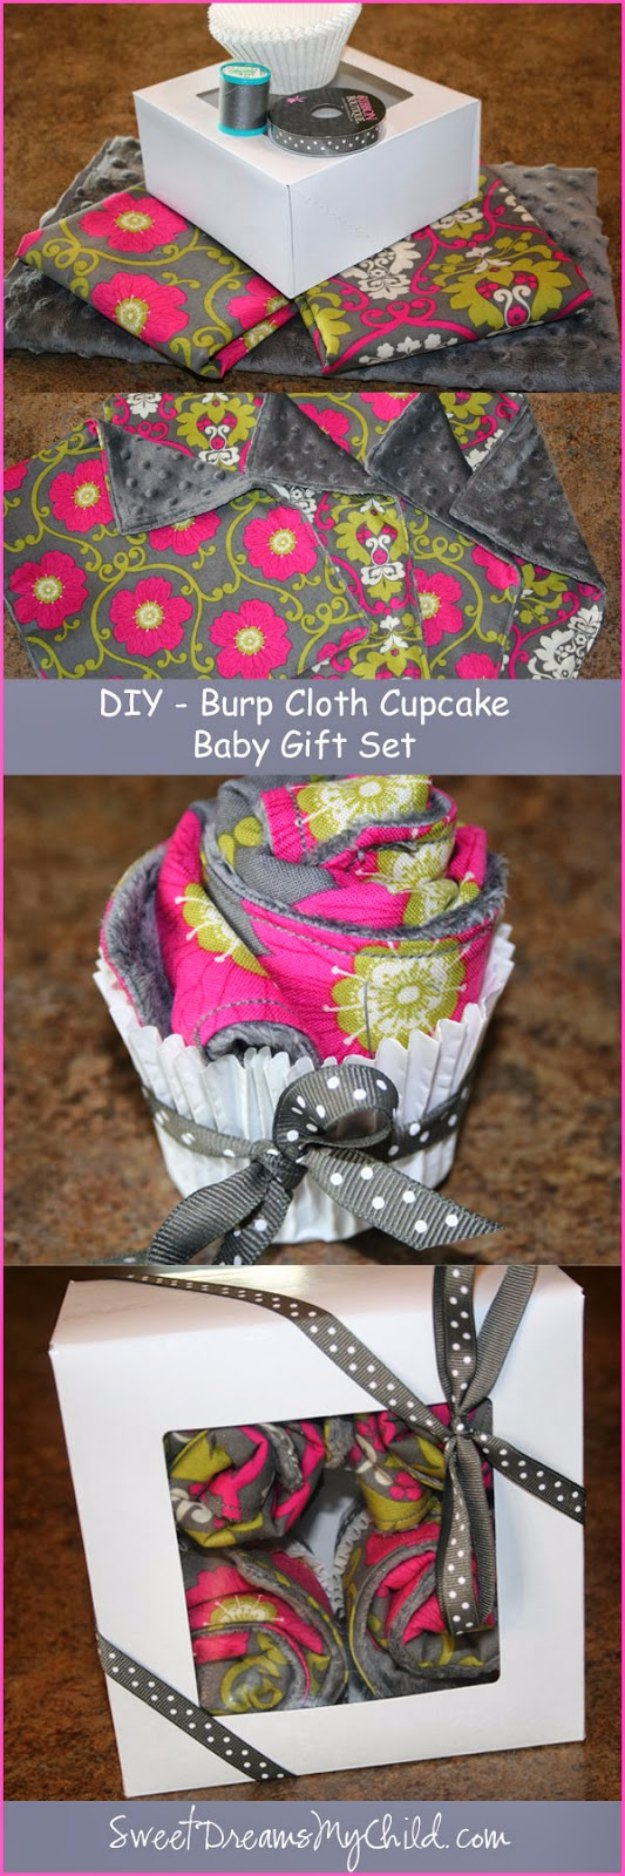 DIY Baby Gifts - Baby Burp Cloth Cupcake Tutorial - Homemade Baby Shower Presents and Creative, Cheap Gift Ideas for Boys and Girls - Unique Gifts for the Mom and Dad to Be - Blankets, Baskets, Burp Cloths and Easy No Sew Projects #diybaby #babygifts #babyshower